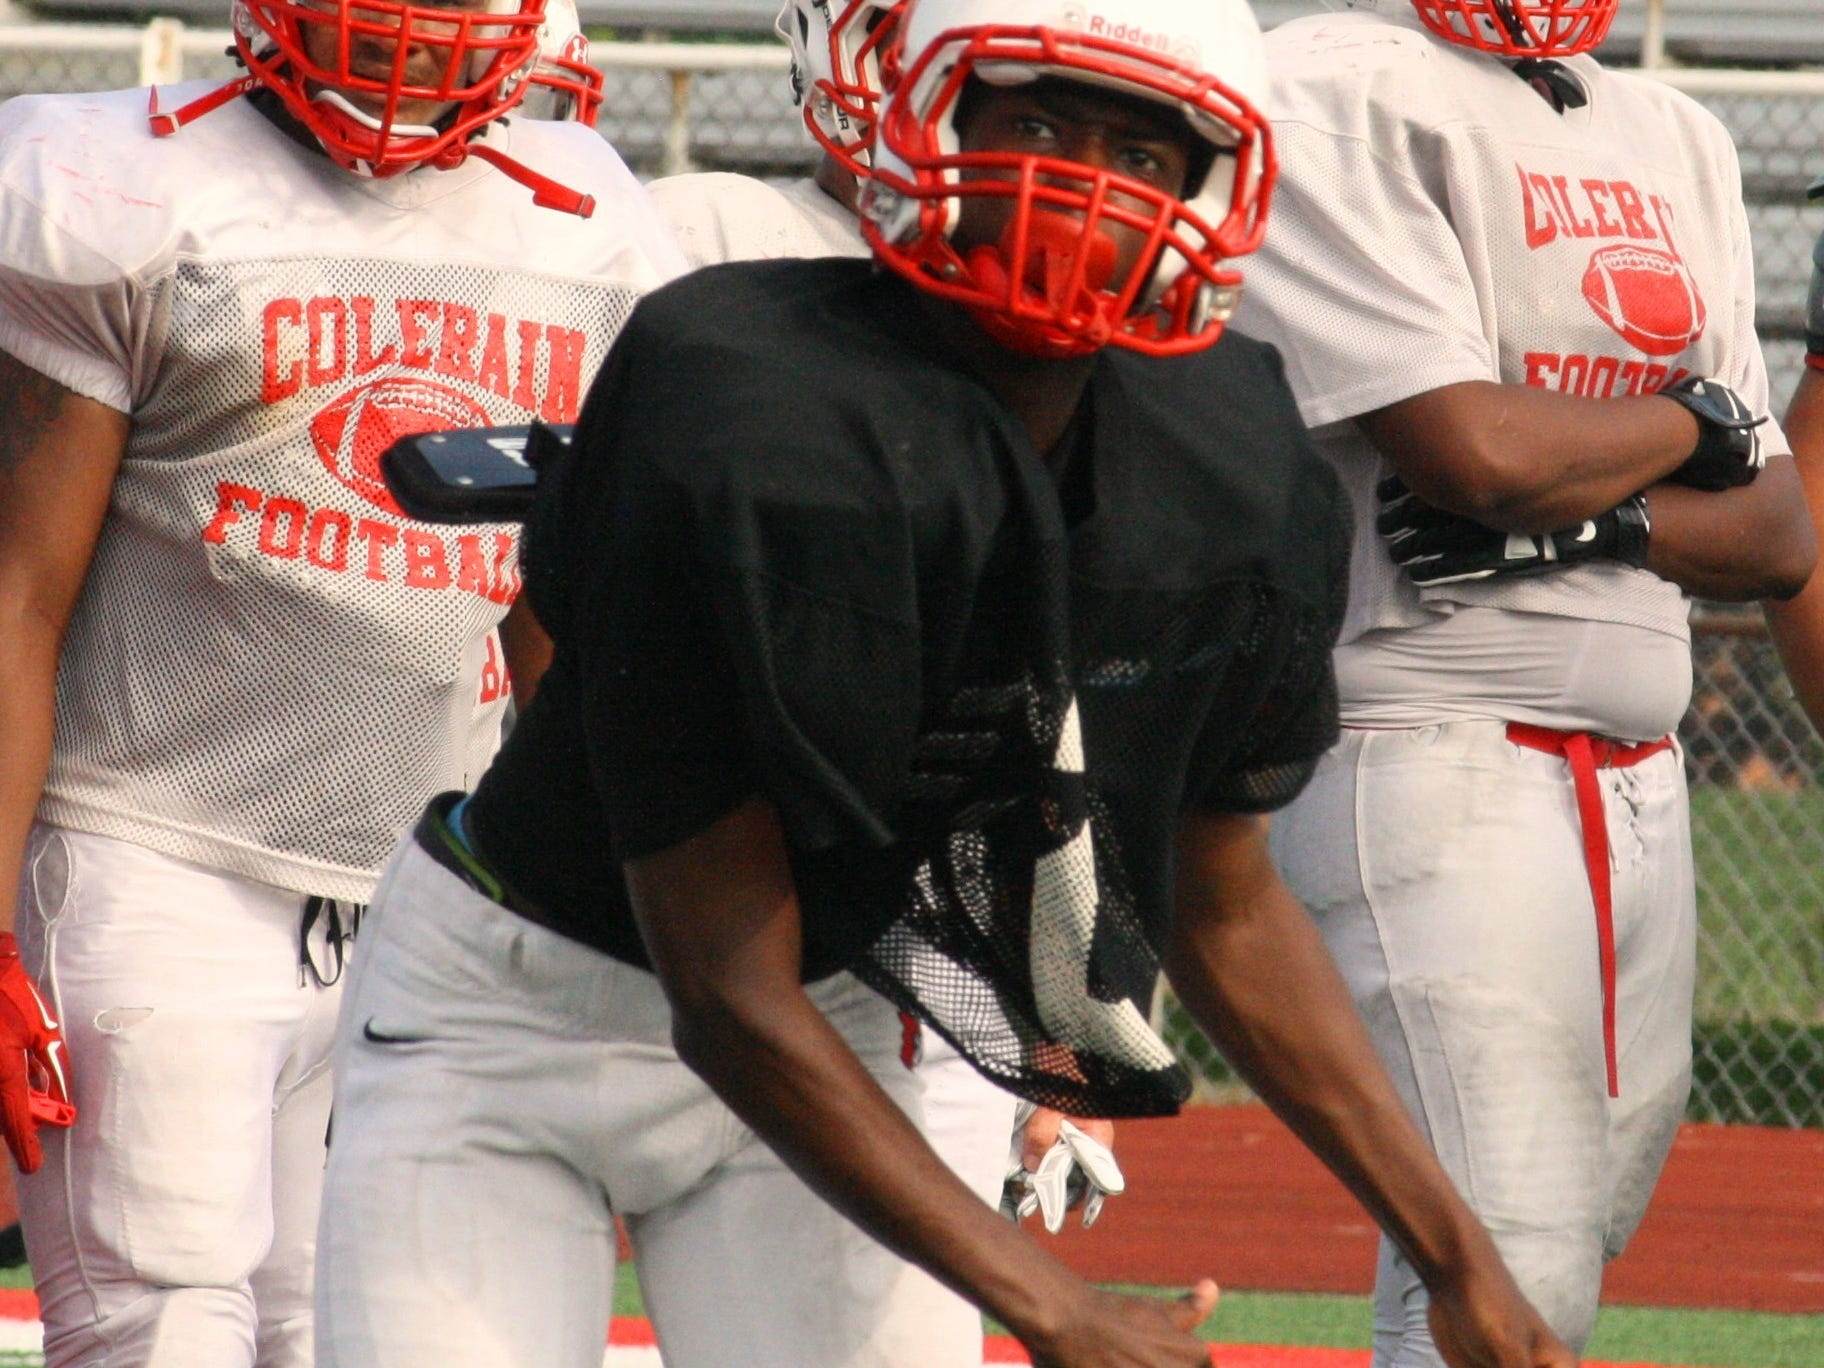 Colerain High School junior Dashaunte Jones follows through on a pass during practice Aug. 19. Jones is competing with senior Spencer Henn for the starting quarterback position.